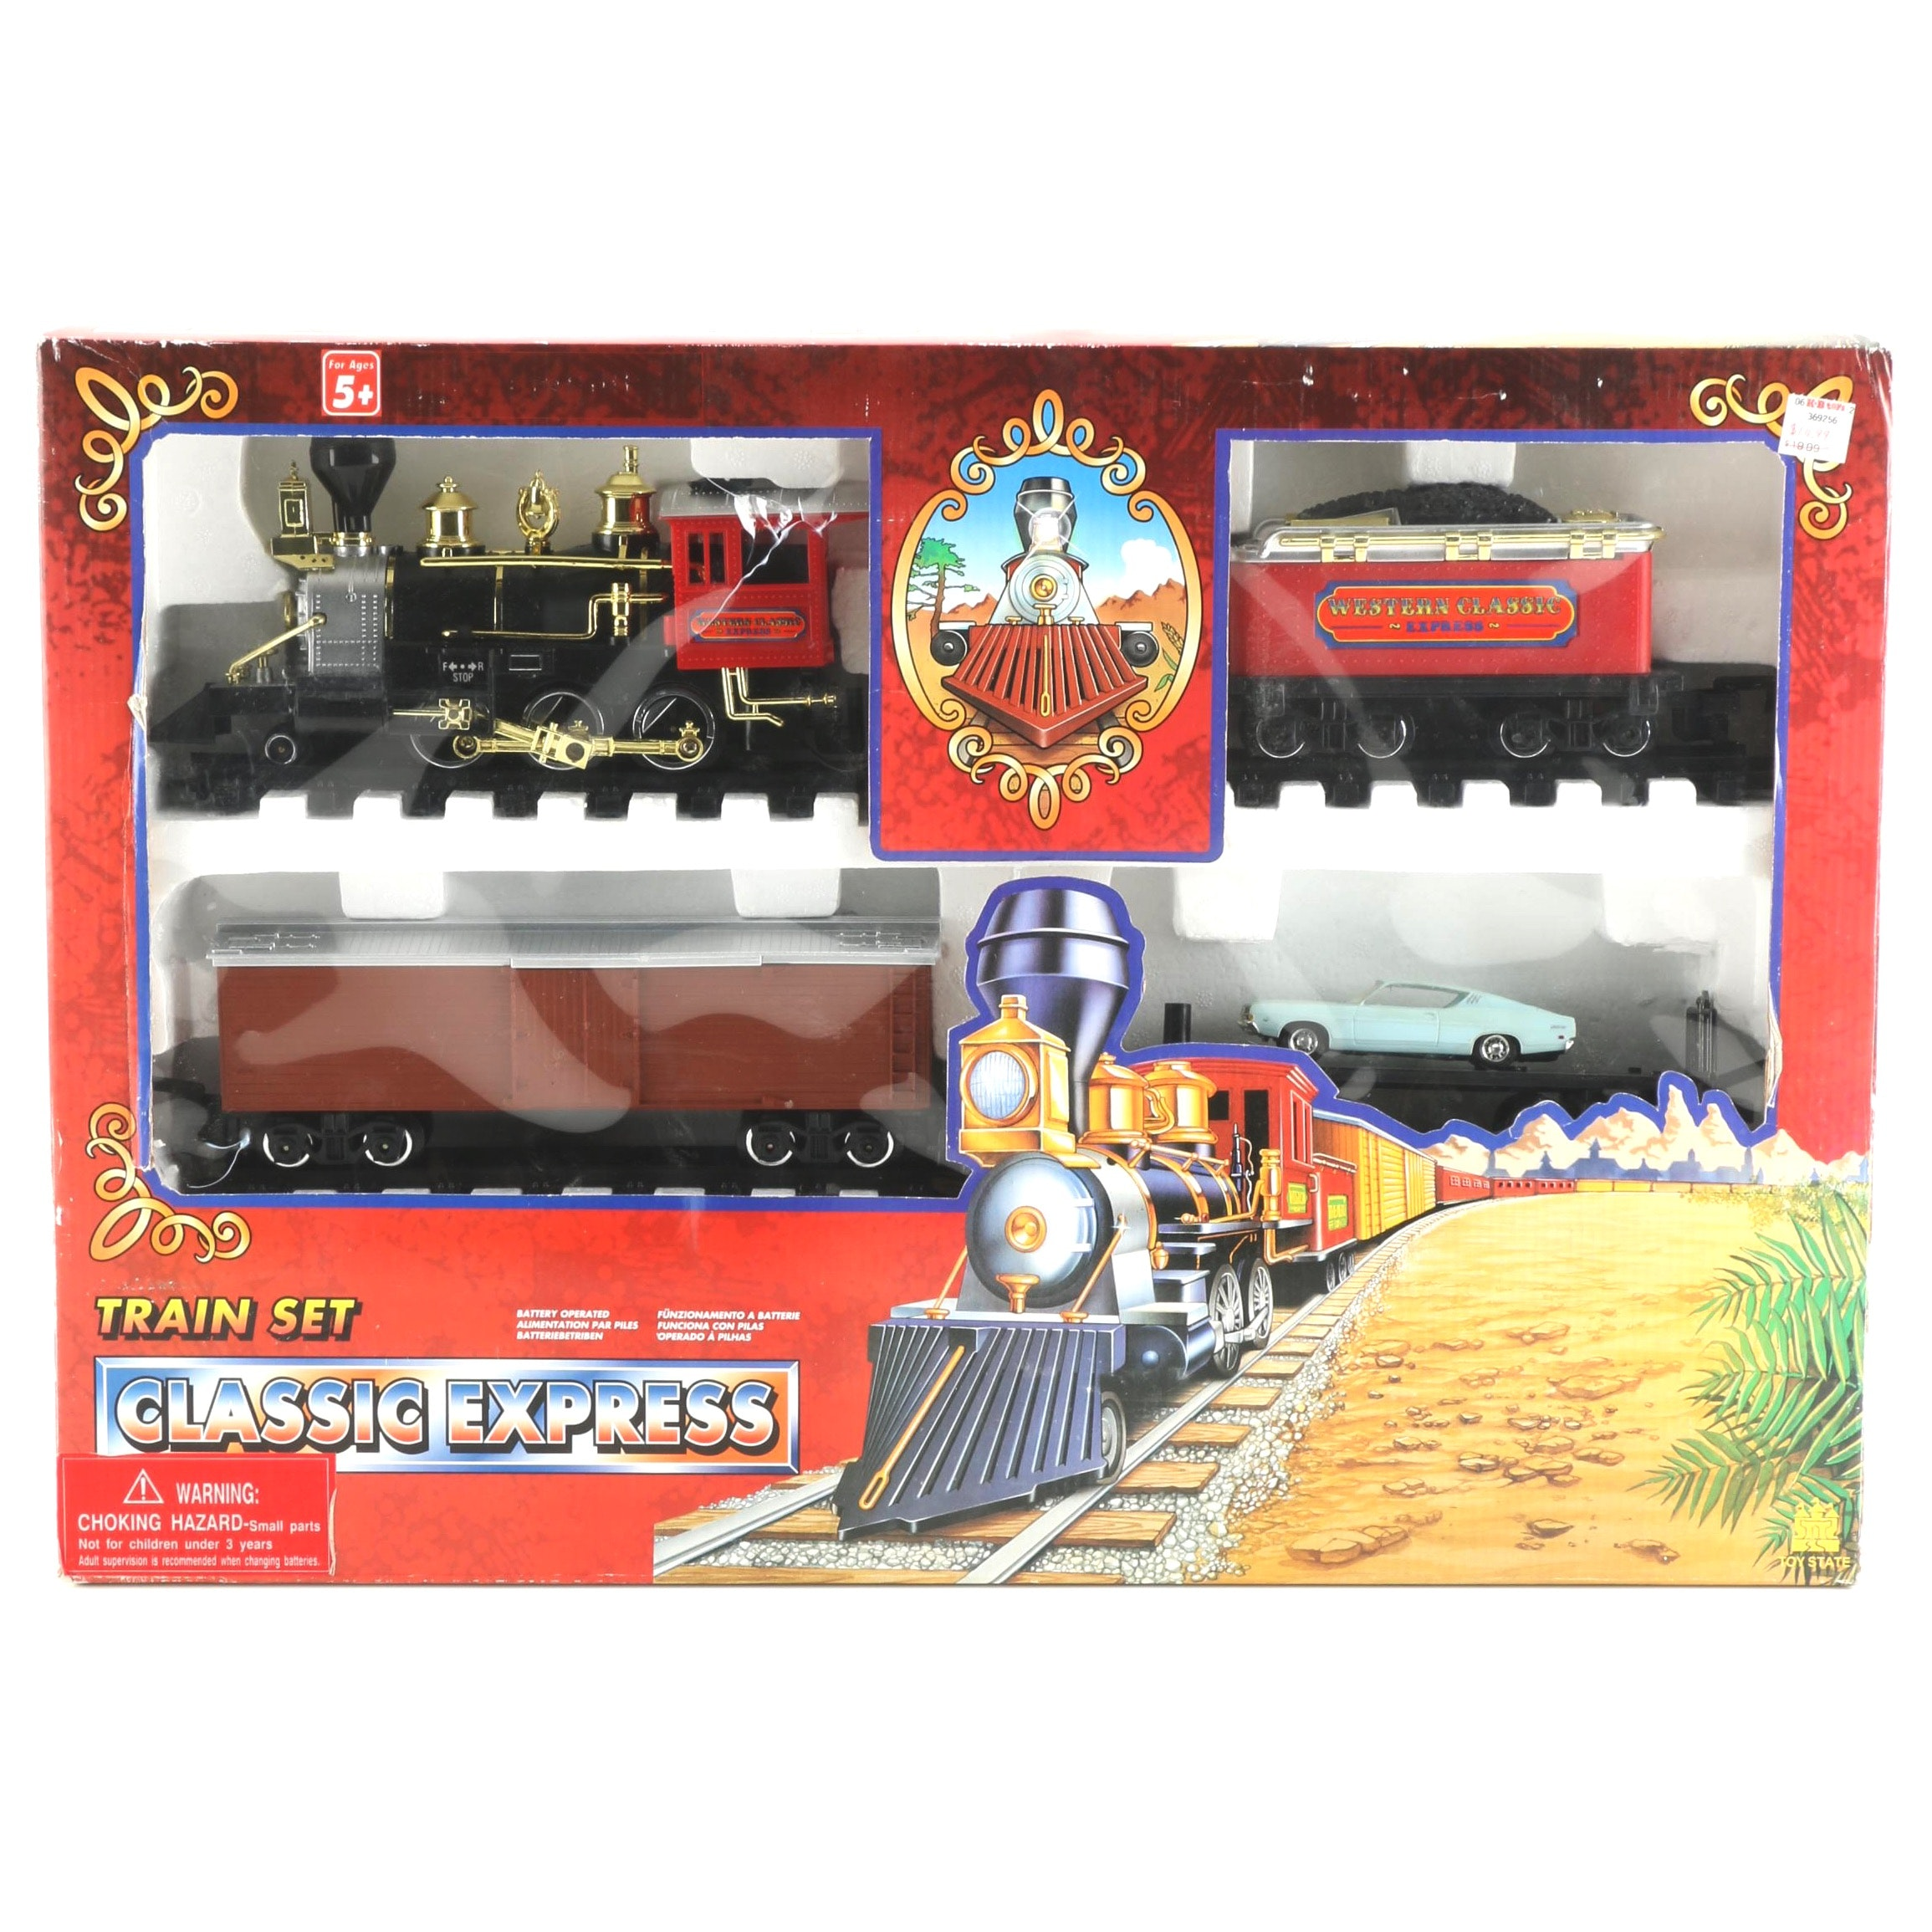 Classic Express Train Set